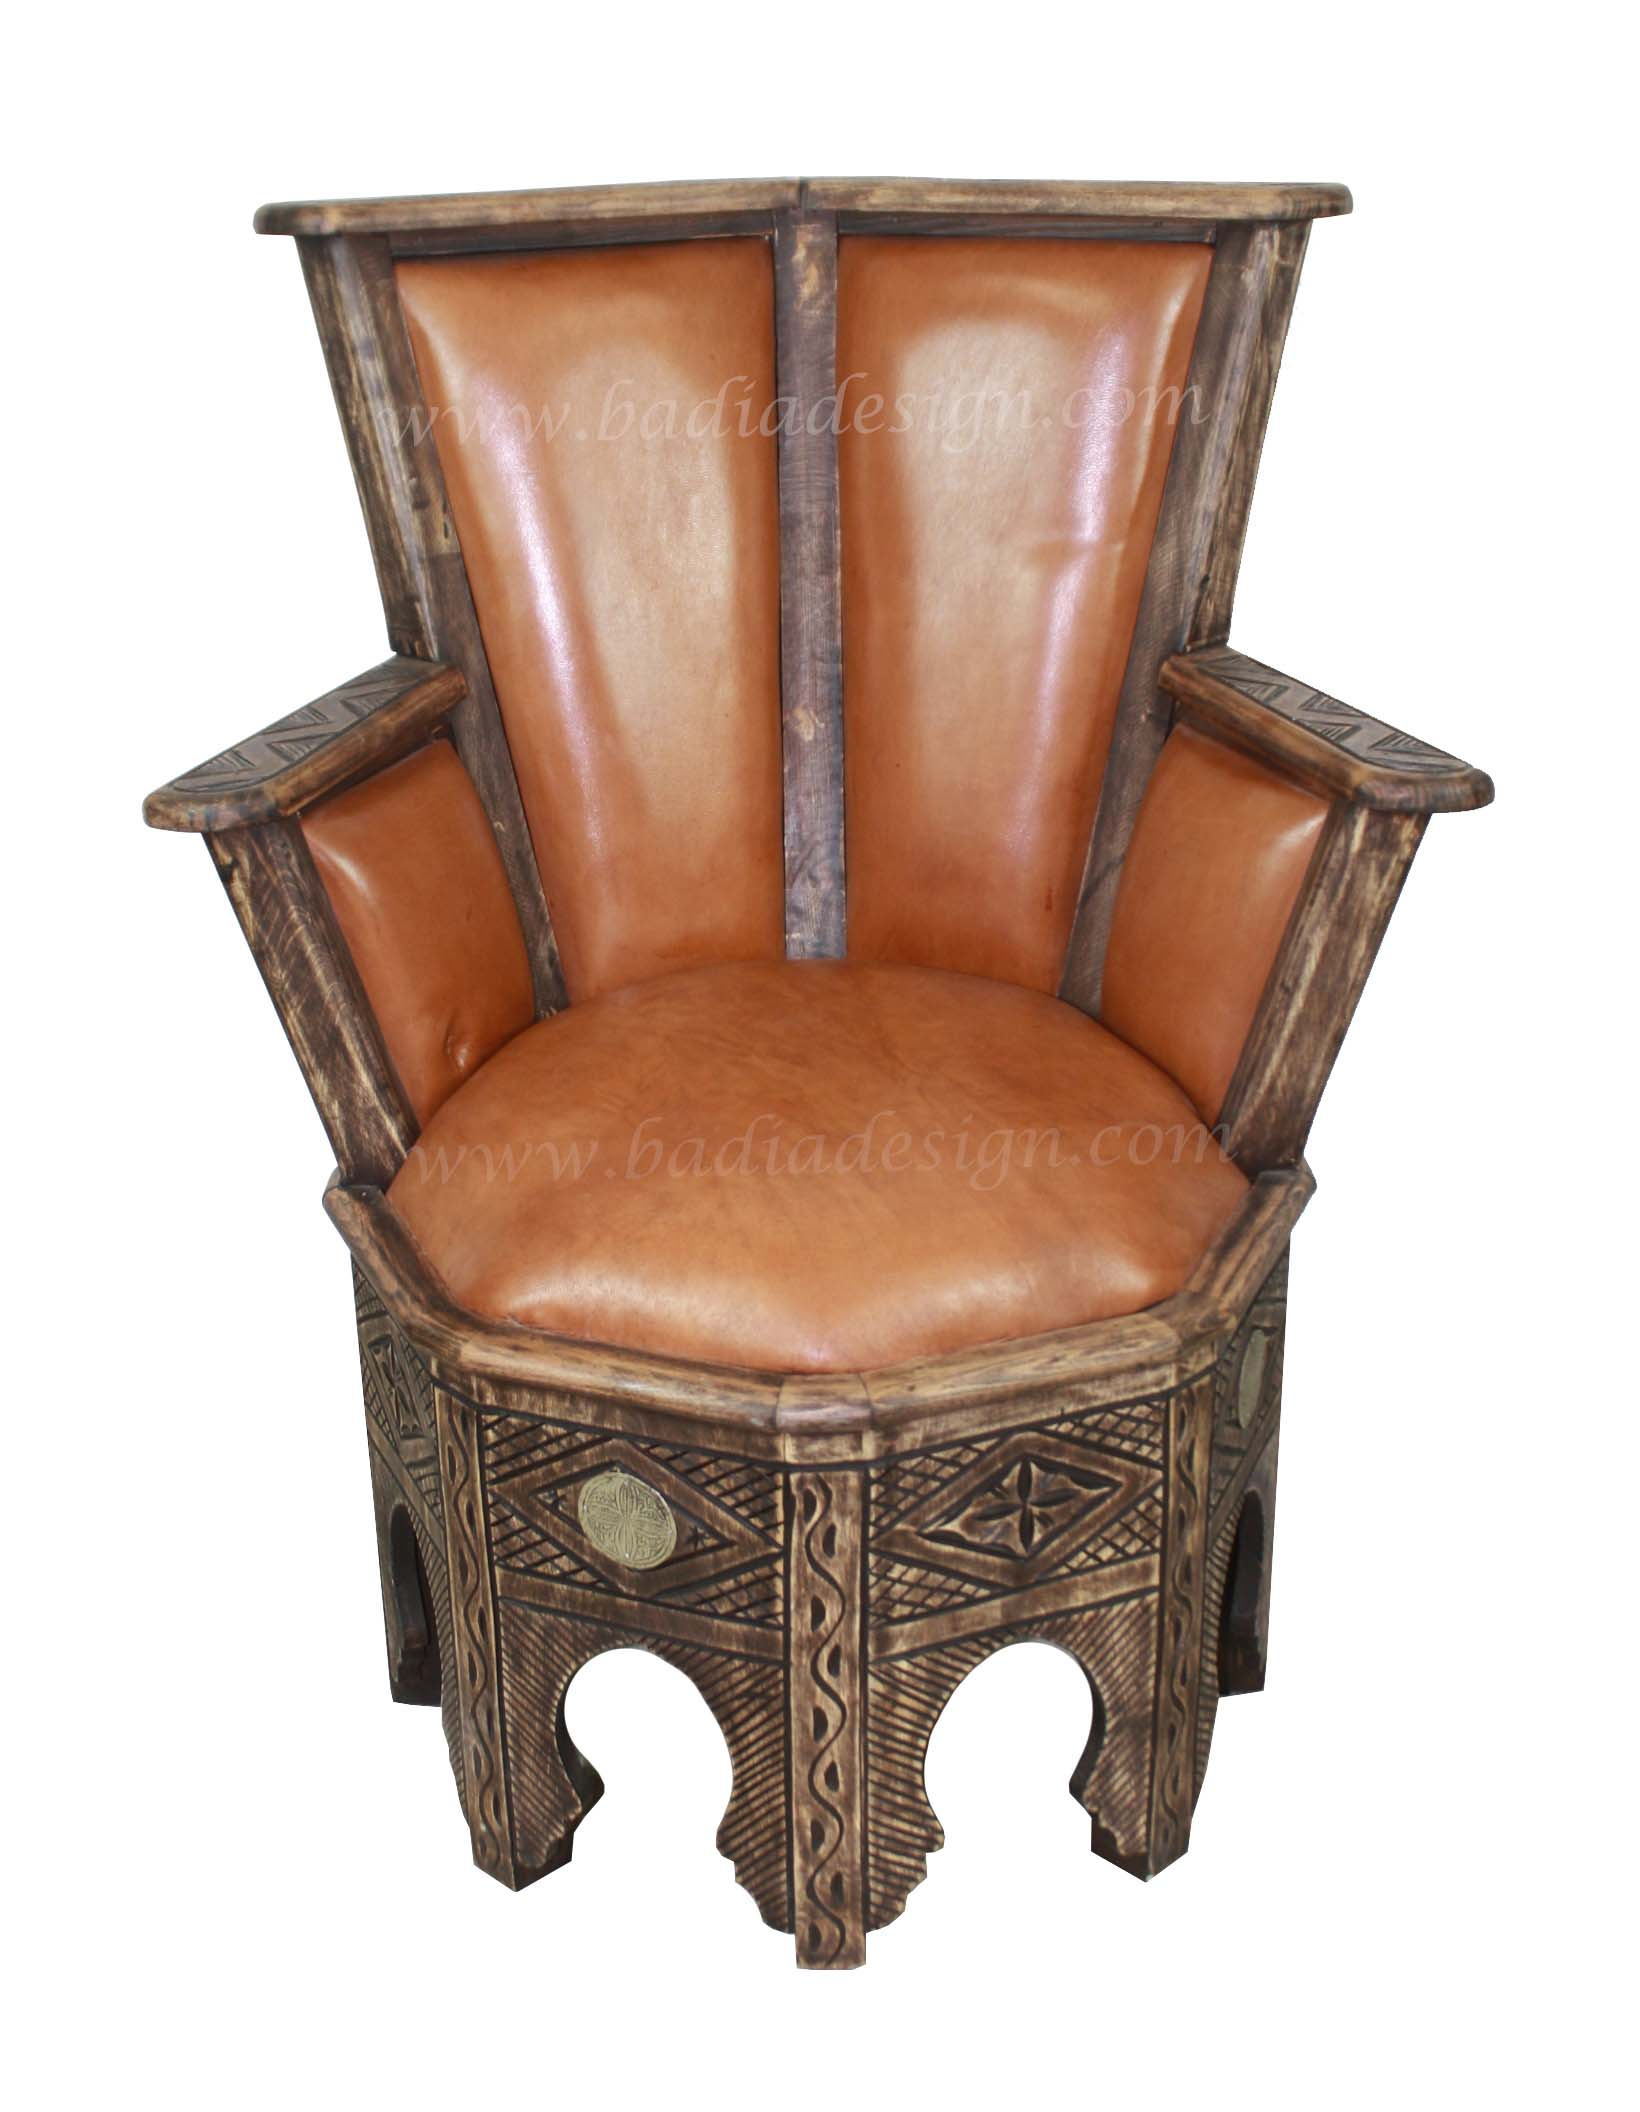 moroccan-leather-chair-cw-ch015-1.jpg